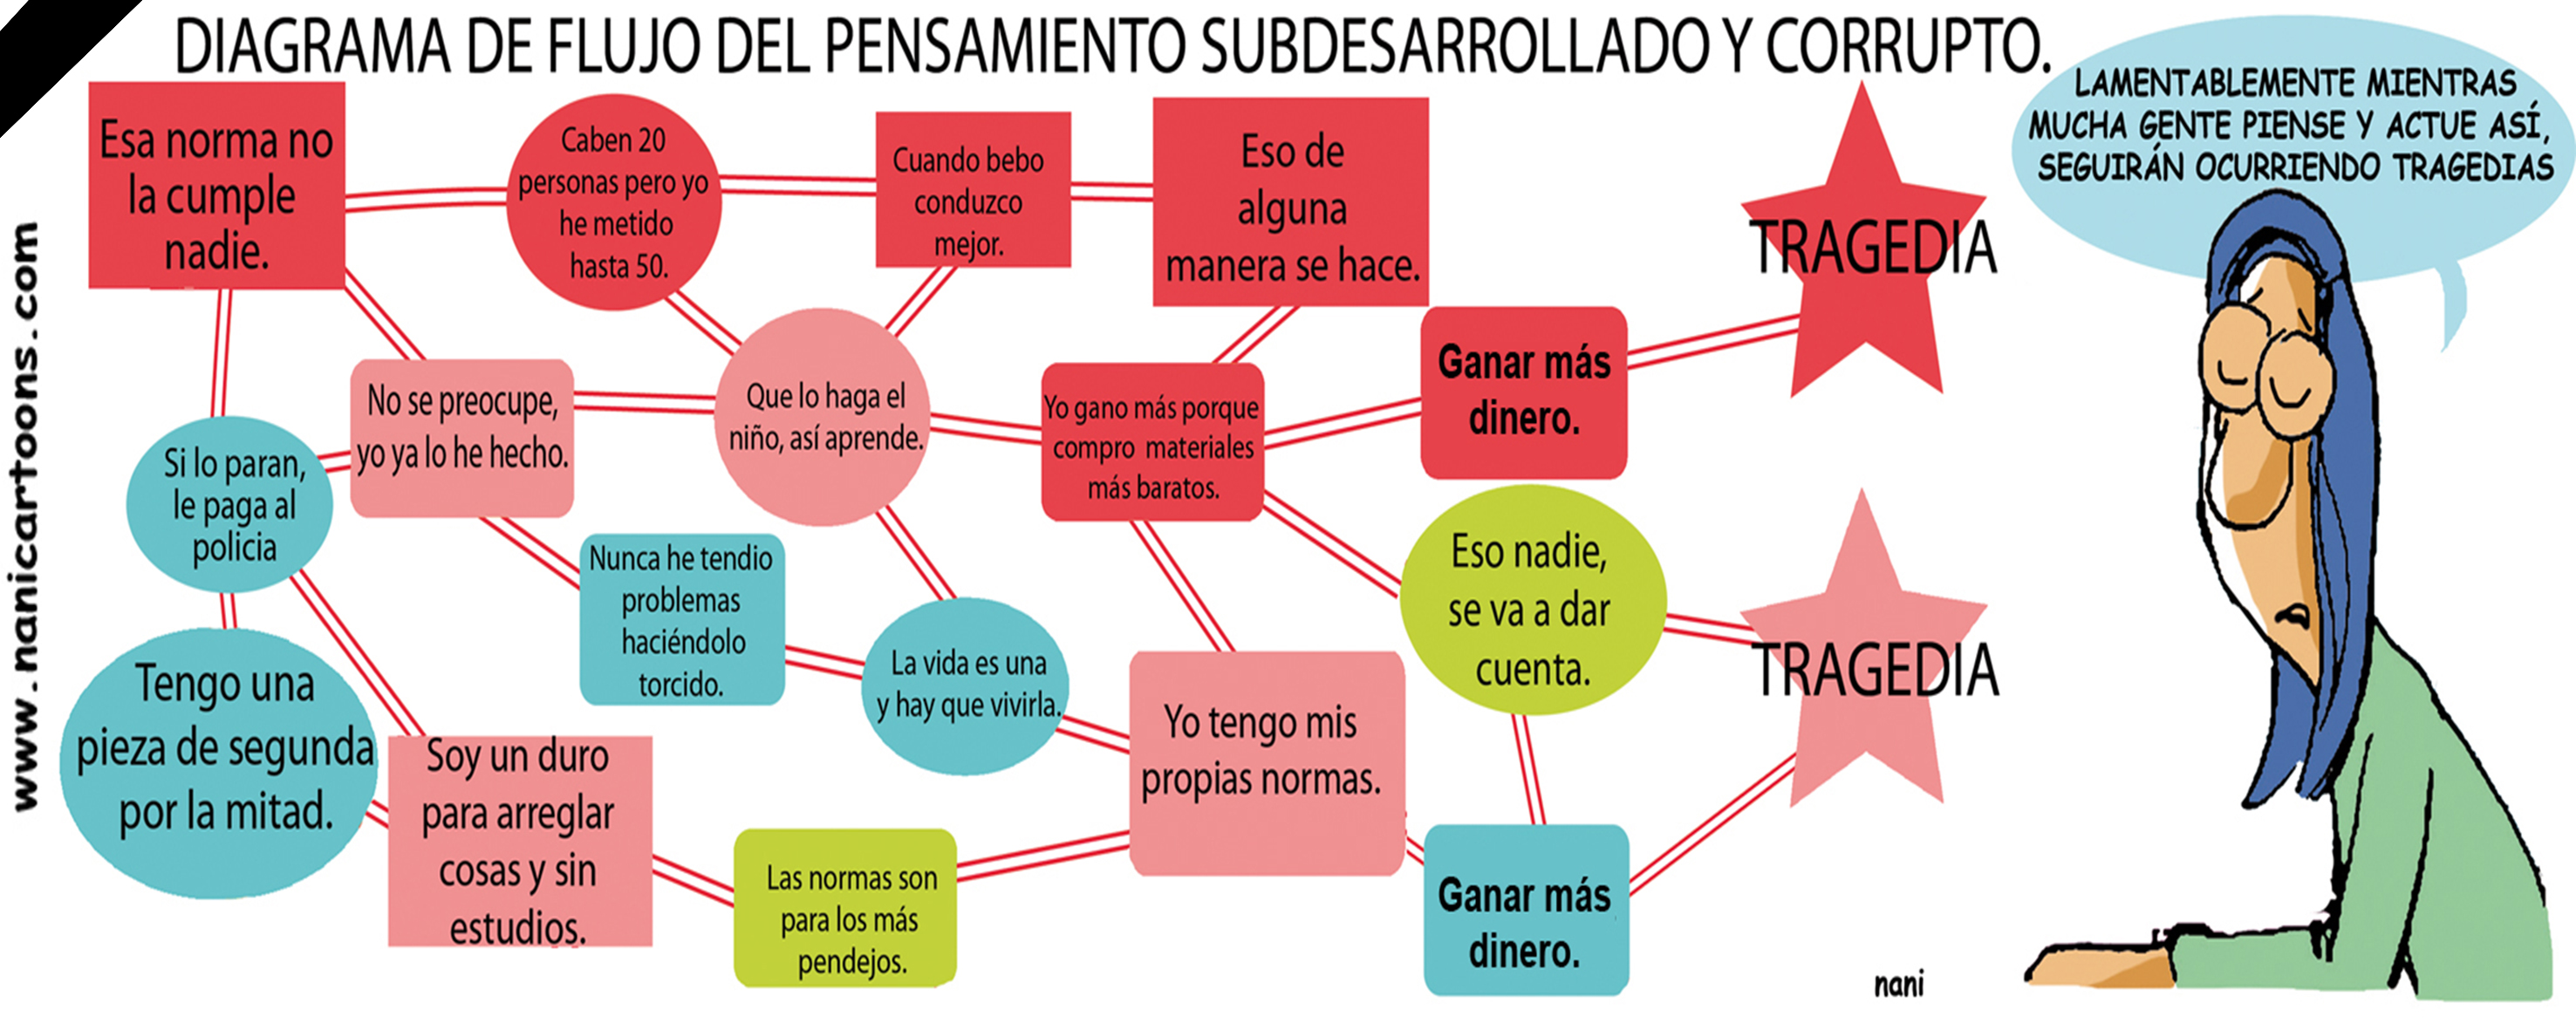 MAGOLA Mayo 21 DIAGRAMA | Blogs El Espectador